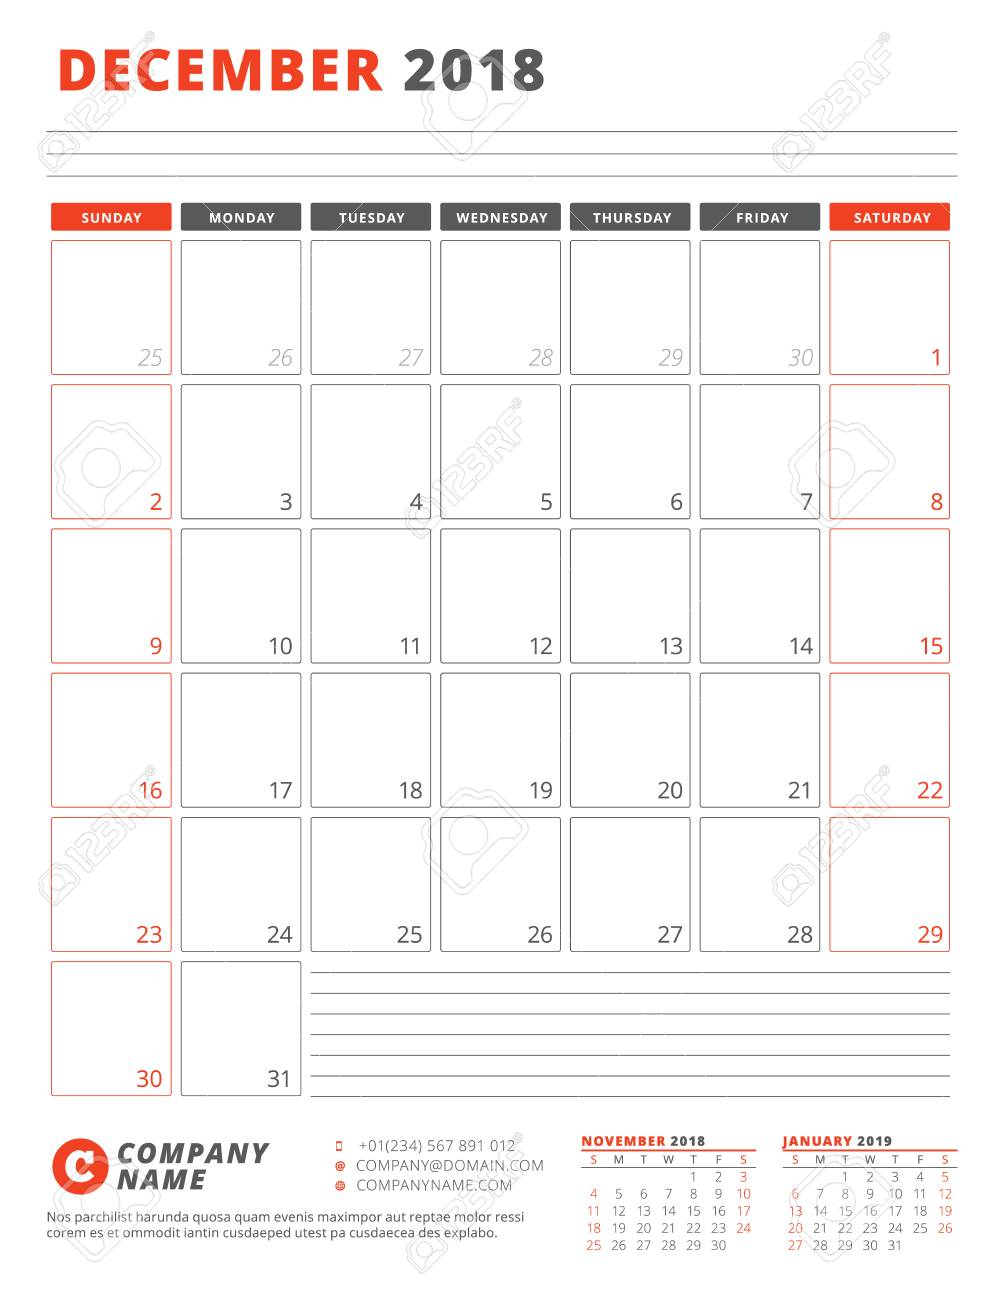 Calendar template for 2018 year december business planner 2018 calendar template for 2018 year december business planner 2018 template stationery design wajeb Images